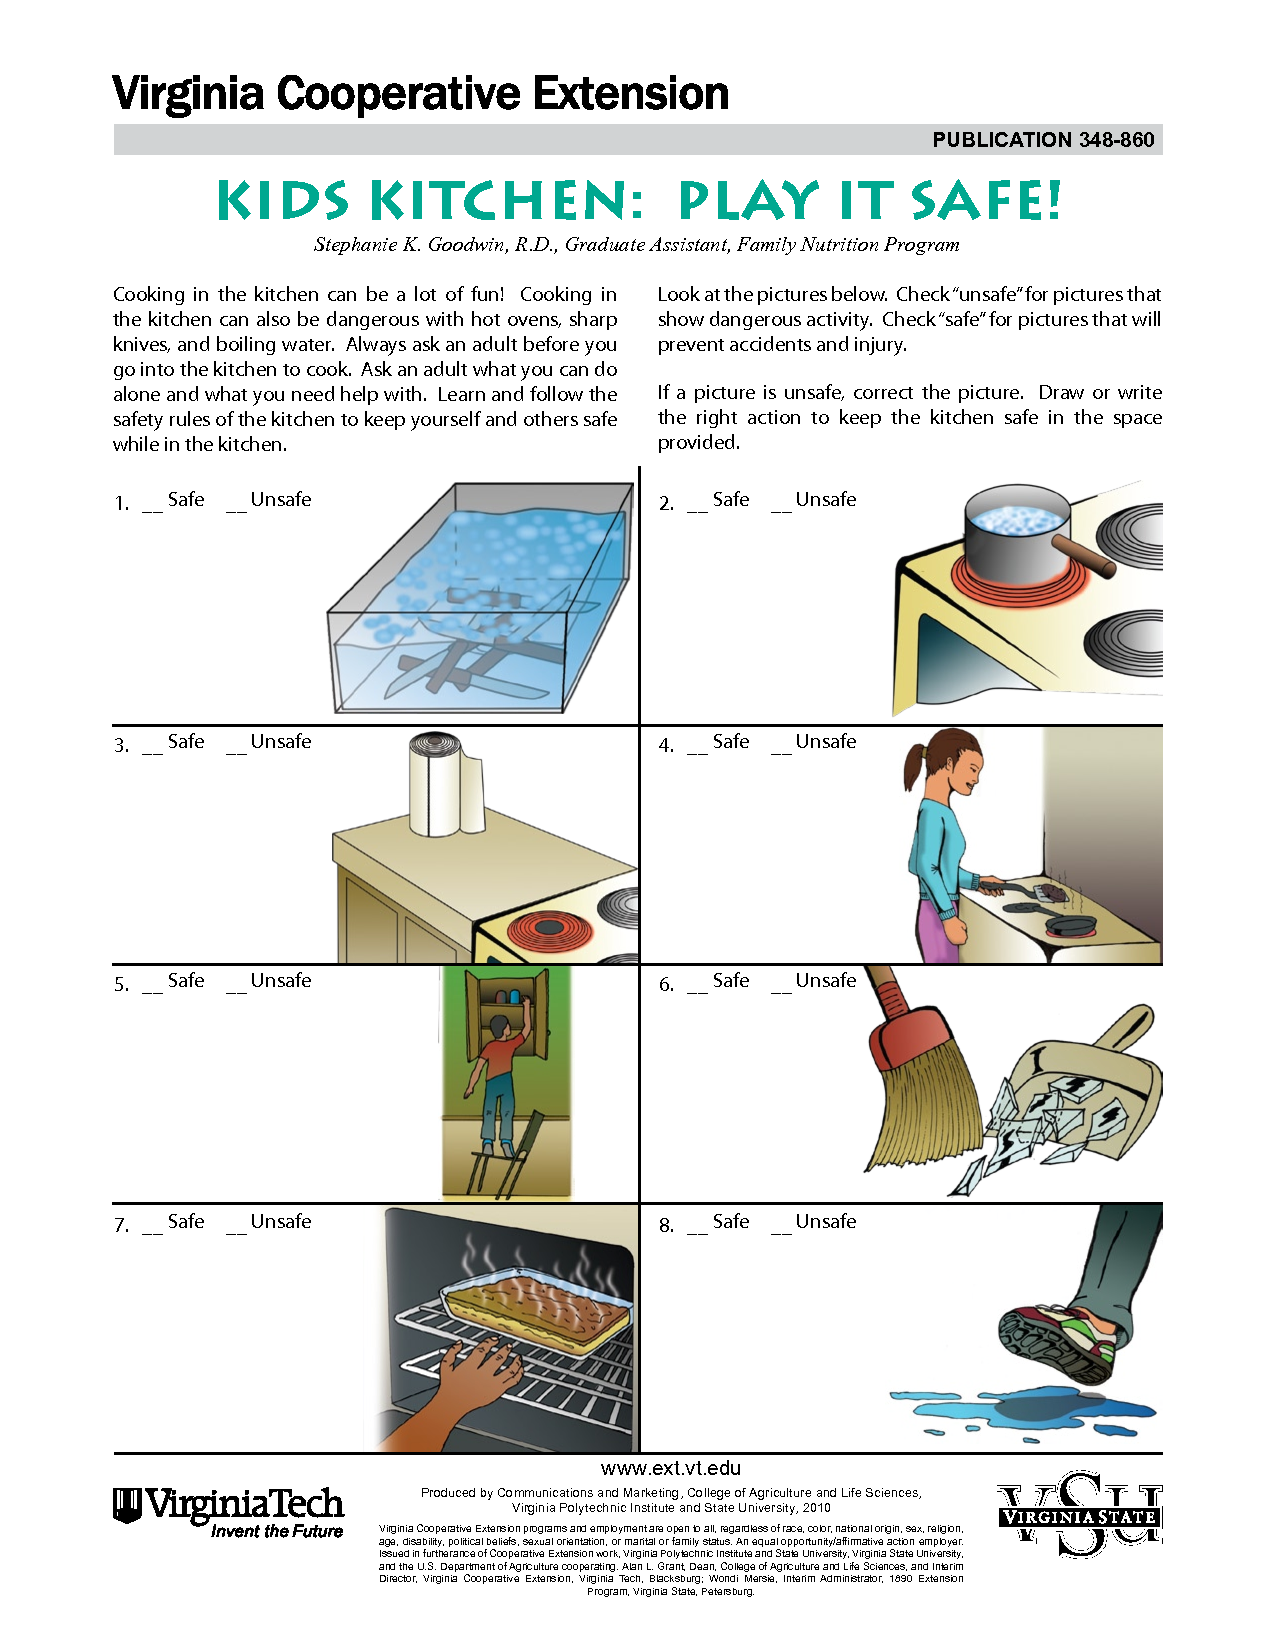 Unsafe Kitchen Pictures